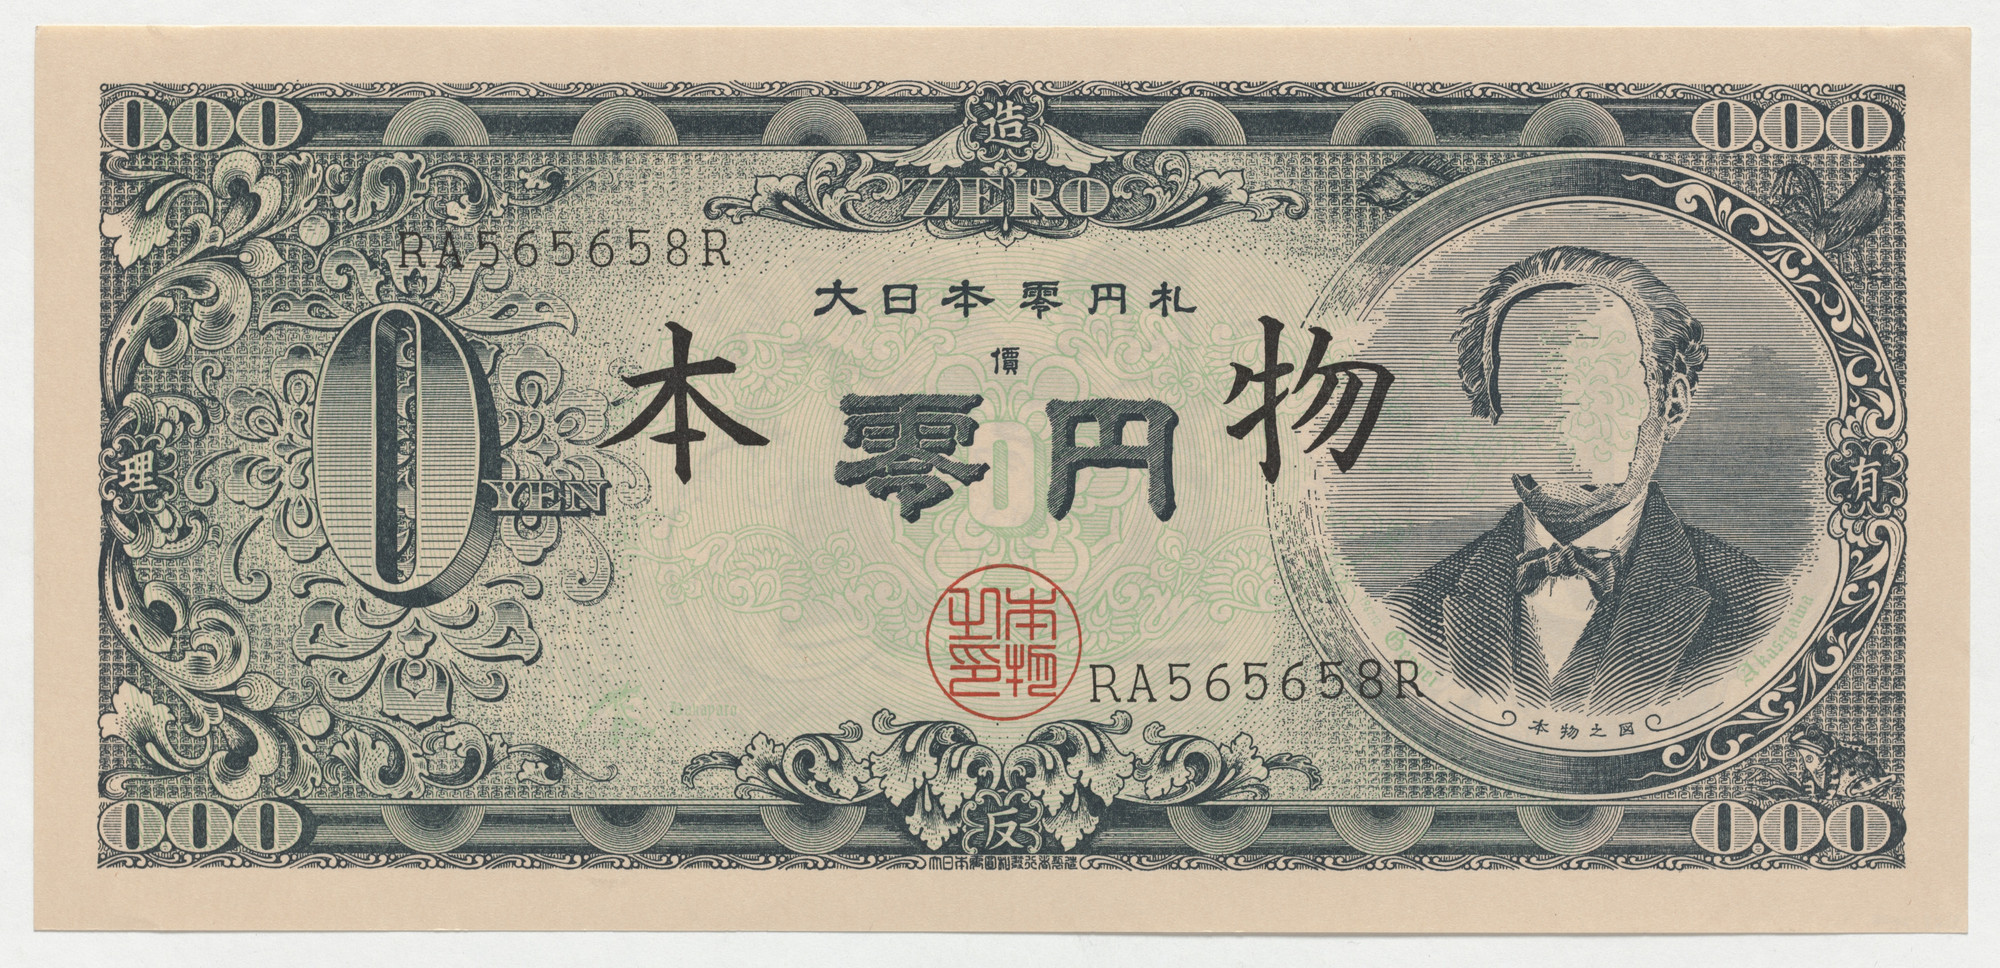 Genpei Akasegawa. Greater Japan  Zero Yen-Note. 1967